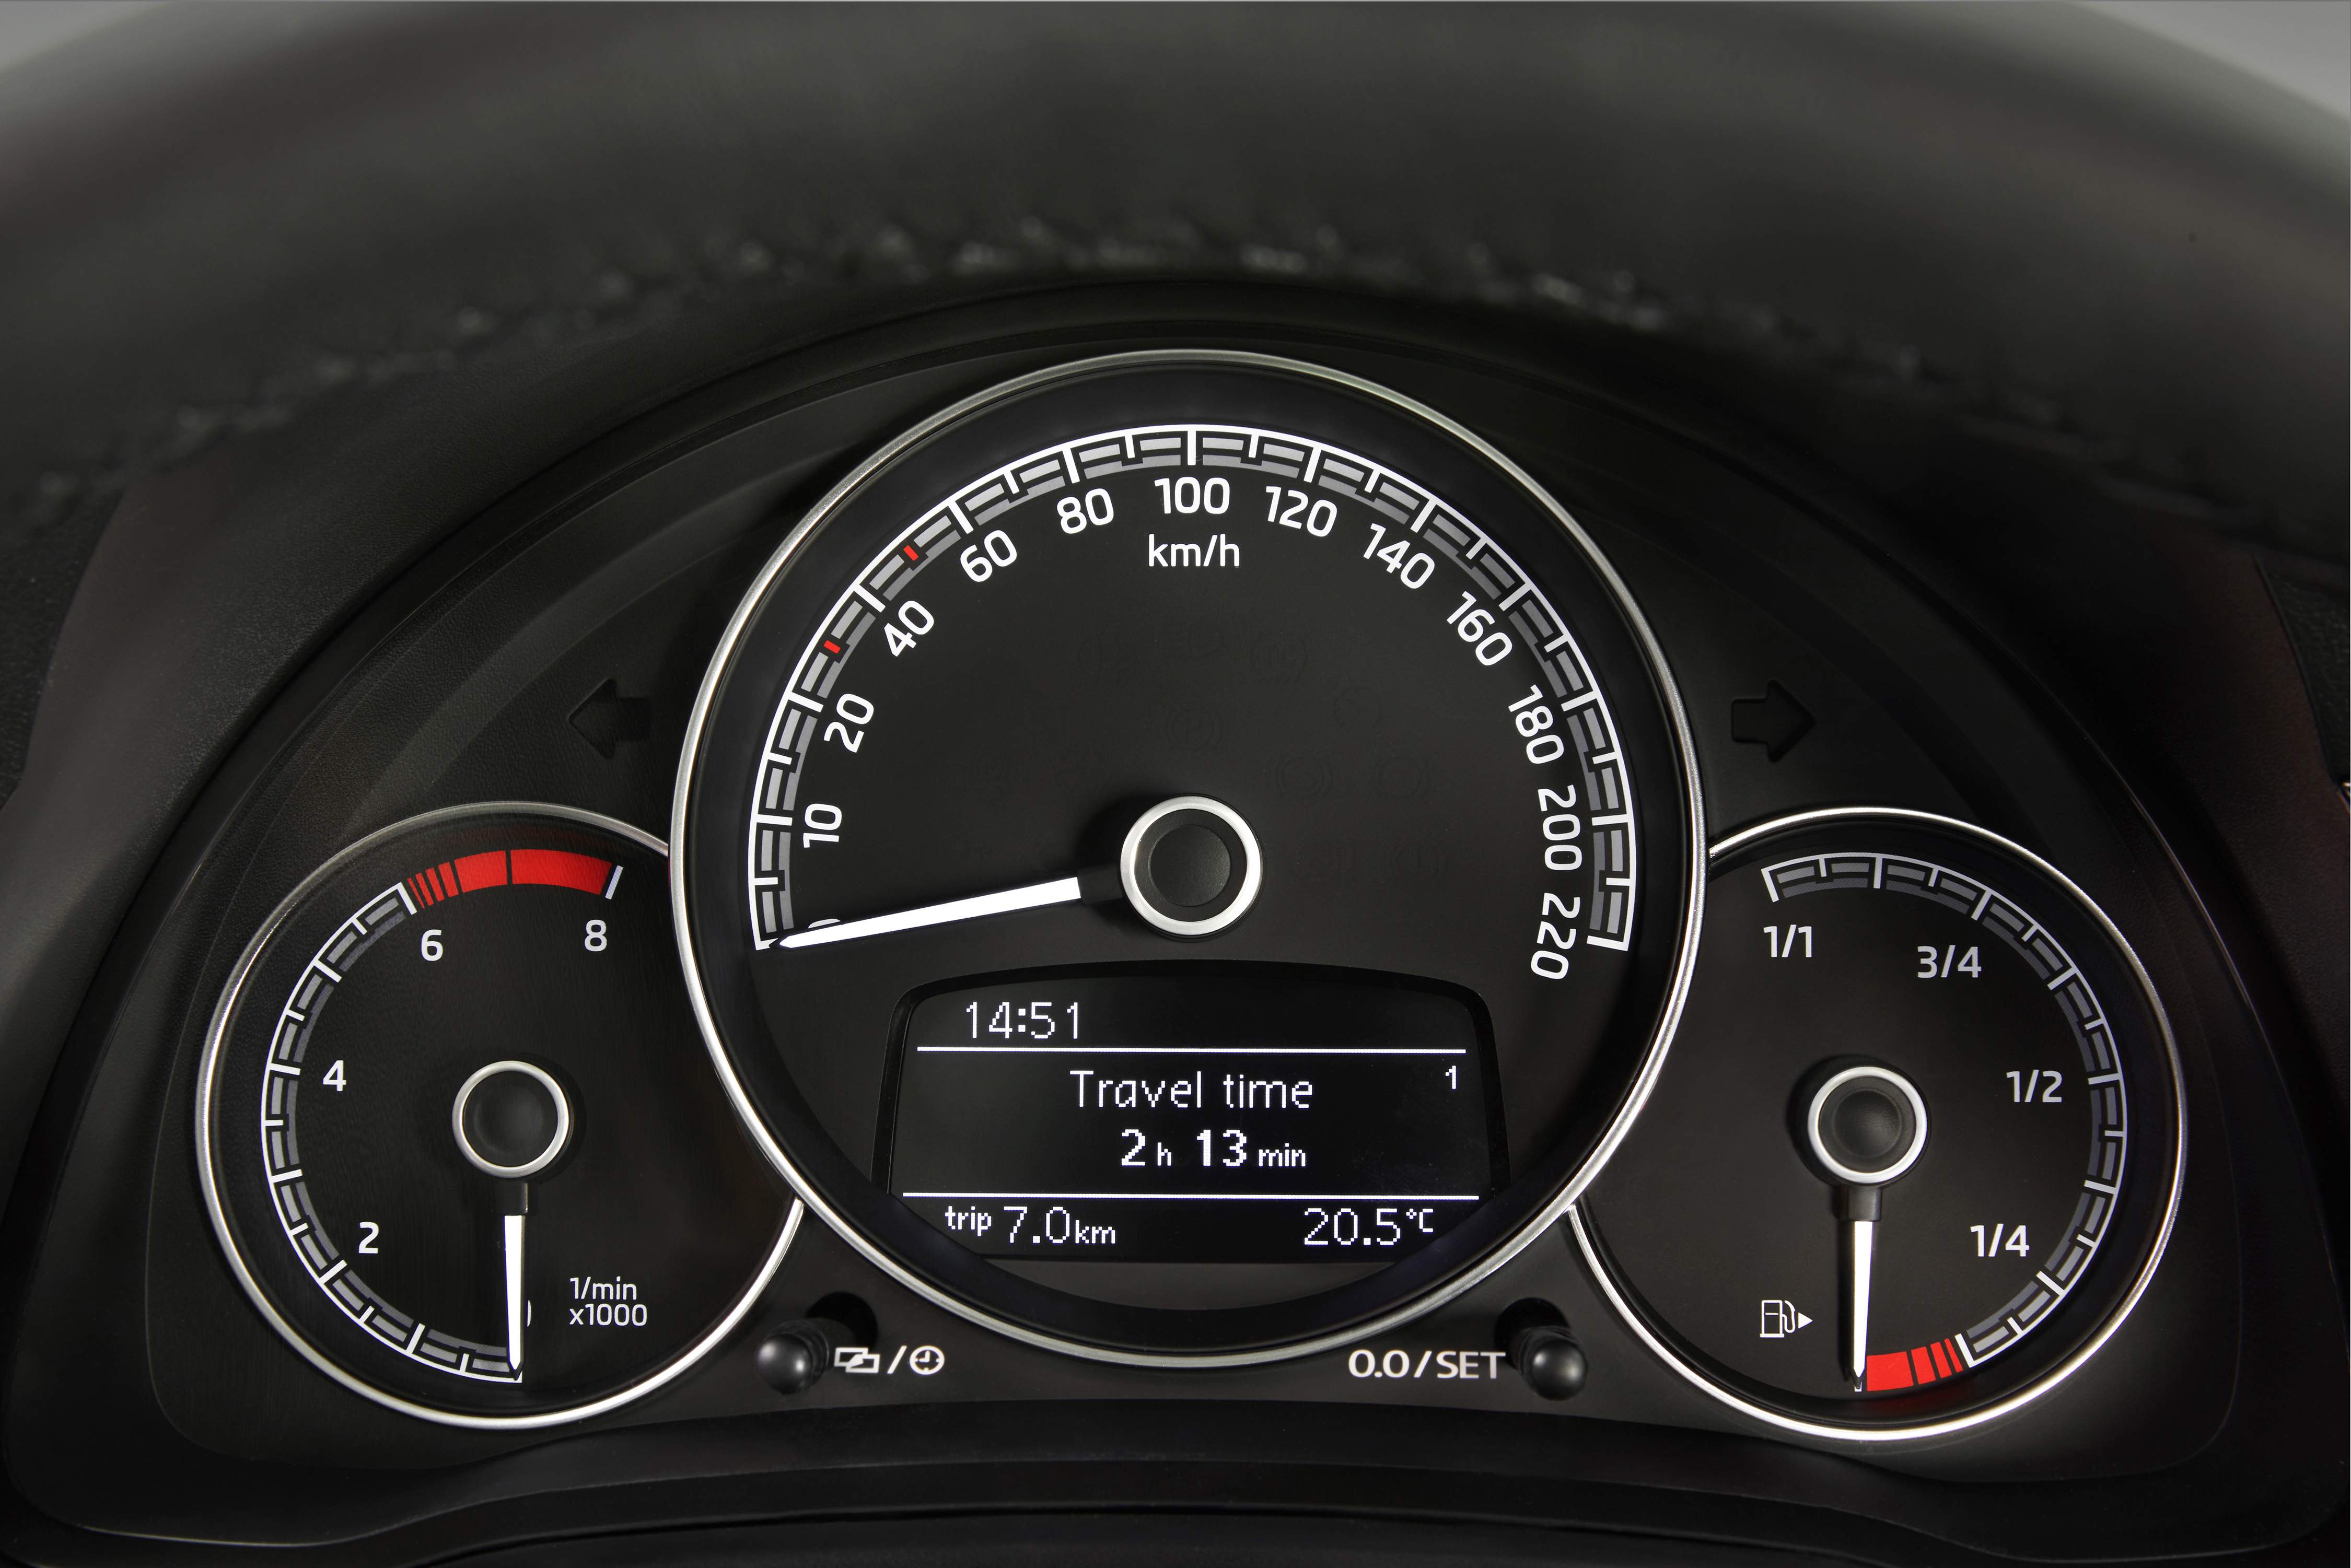 Koda Citigo Storyboard Tachometer 4 In 1 The Digital Display Which Is Located Lower Section Of Speedometer Showing Time Mileage Etc Now Easier To Read With White Numbers On A